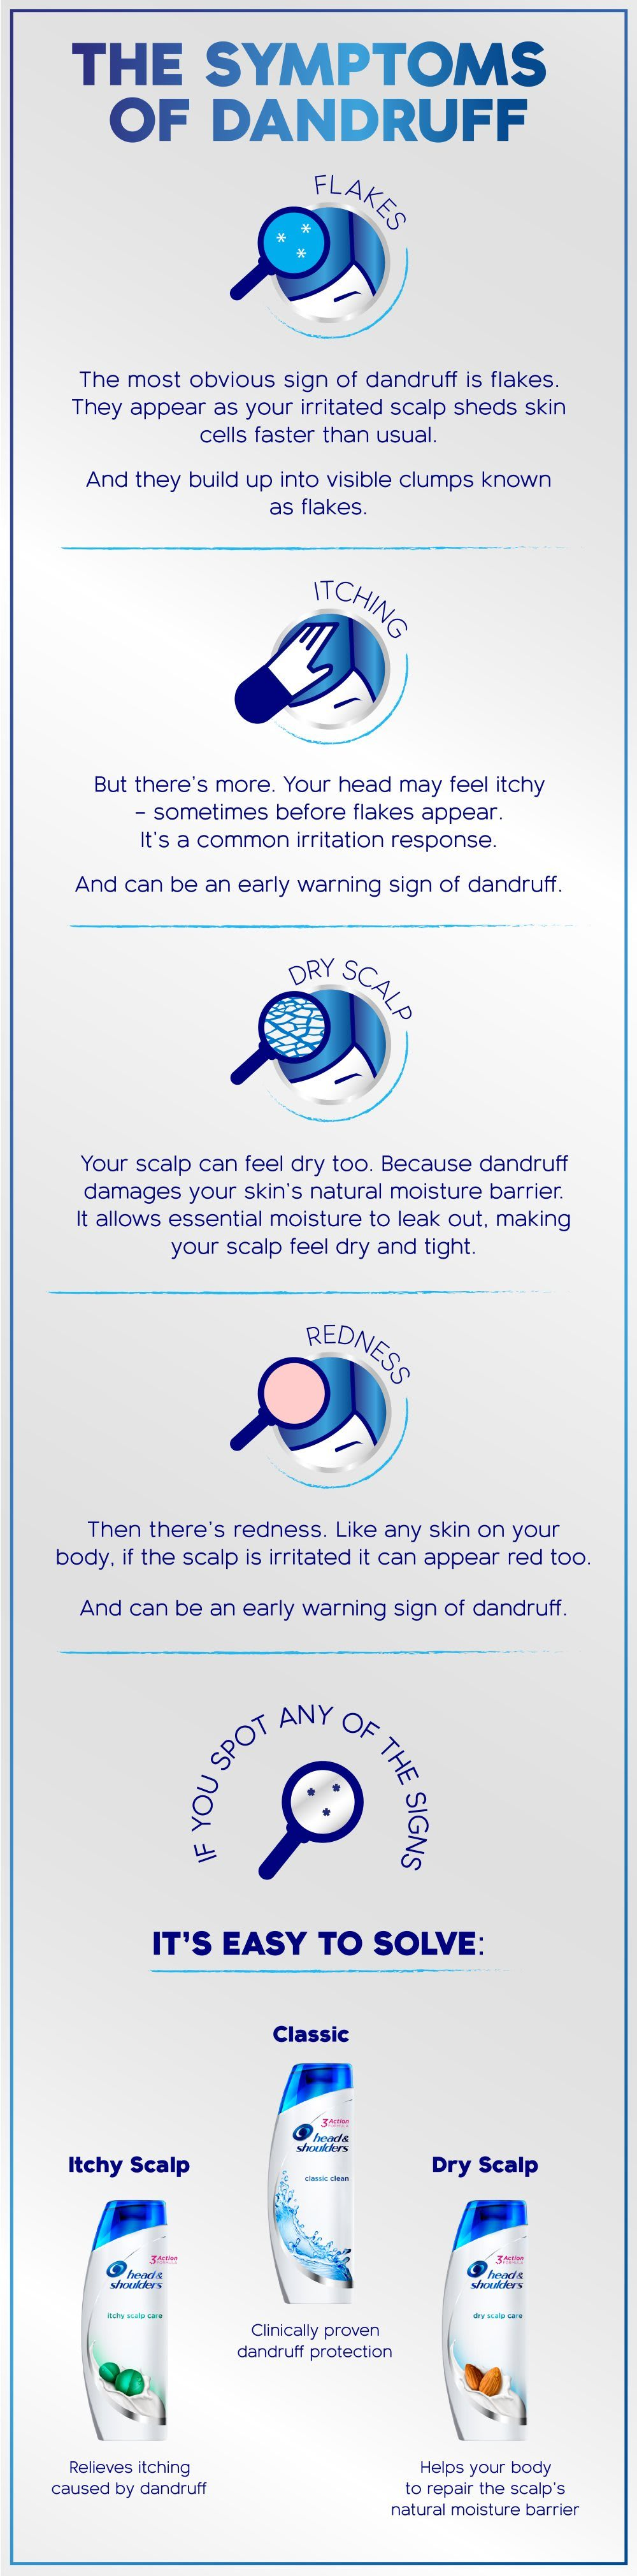 WHAT CAUSES DANDRUFF?